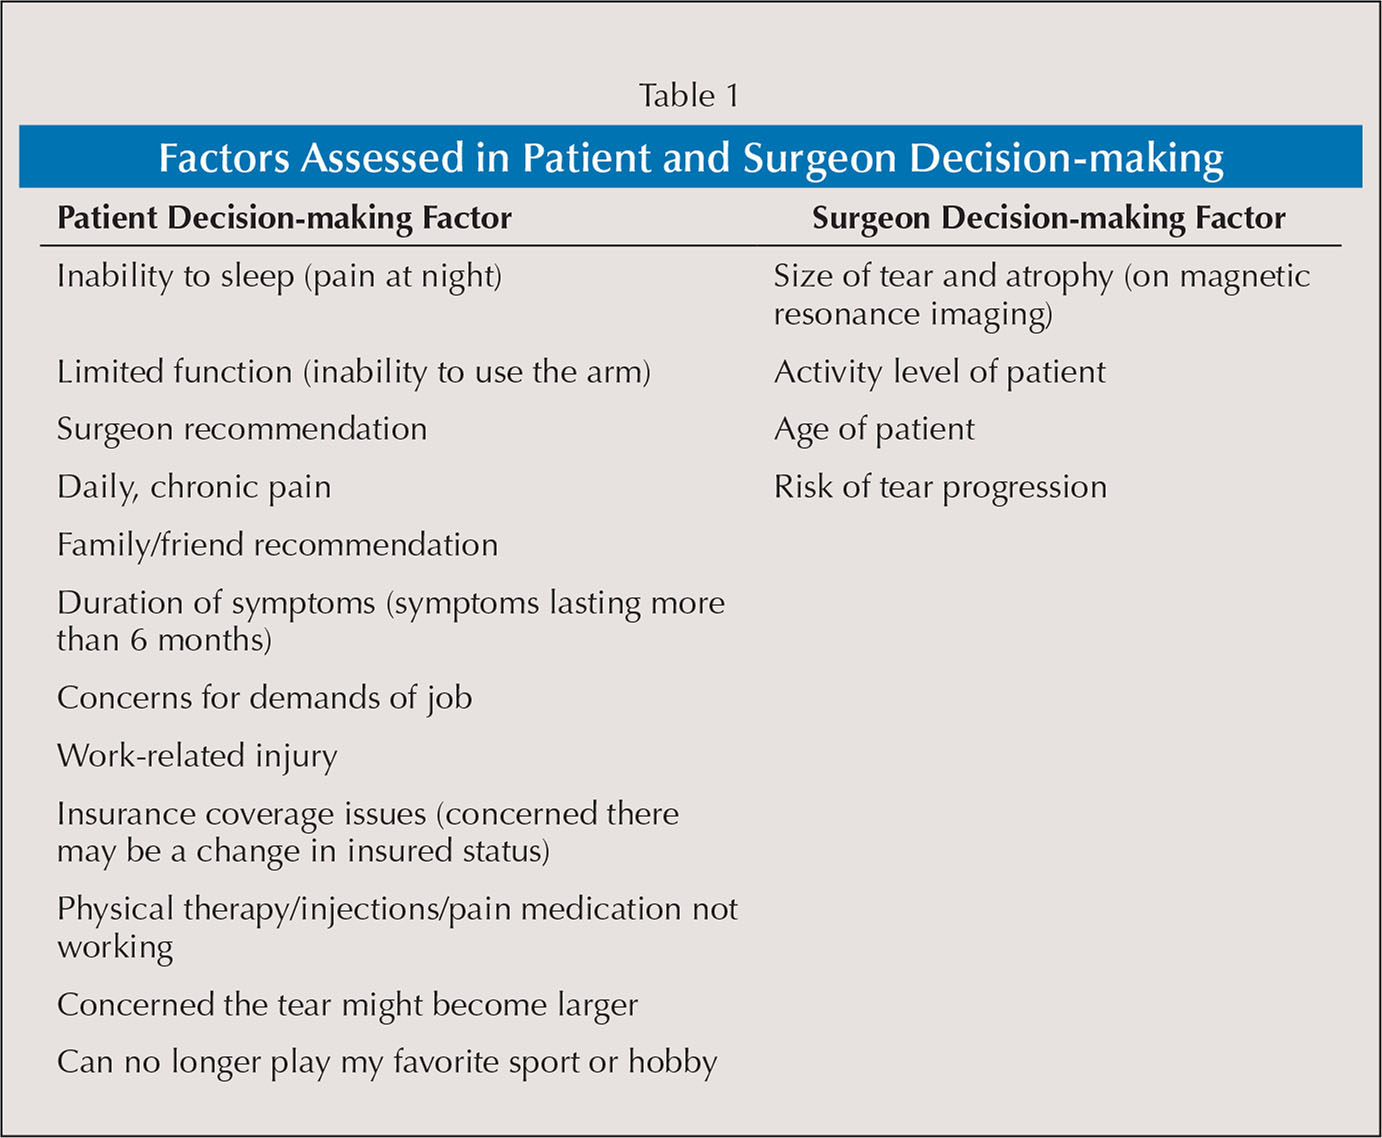 Factors Assessed in Patient and Surgeon Decision-making